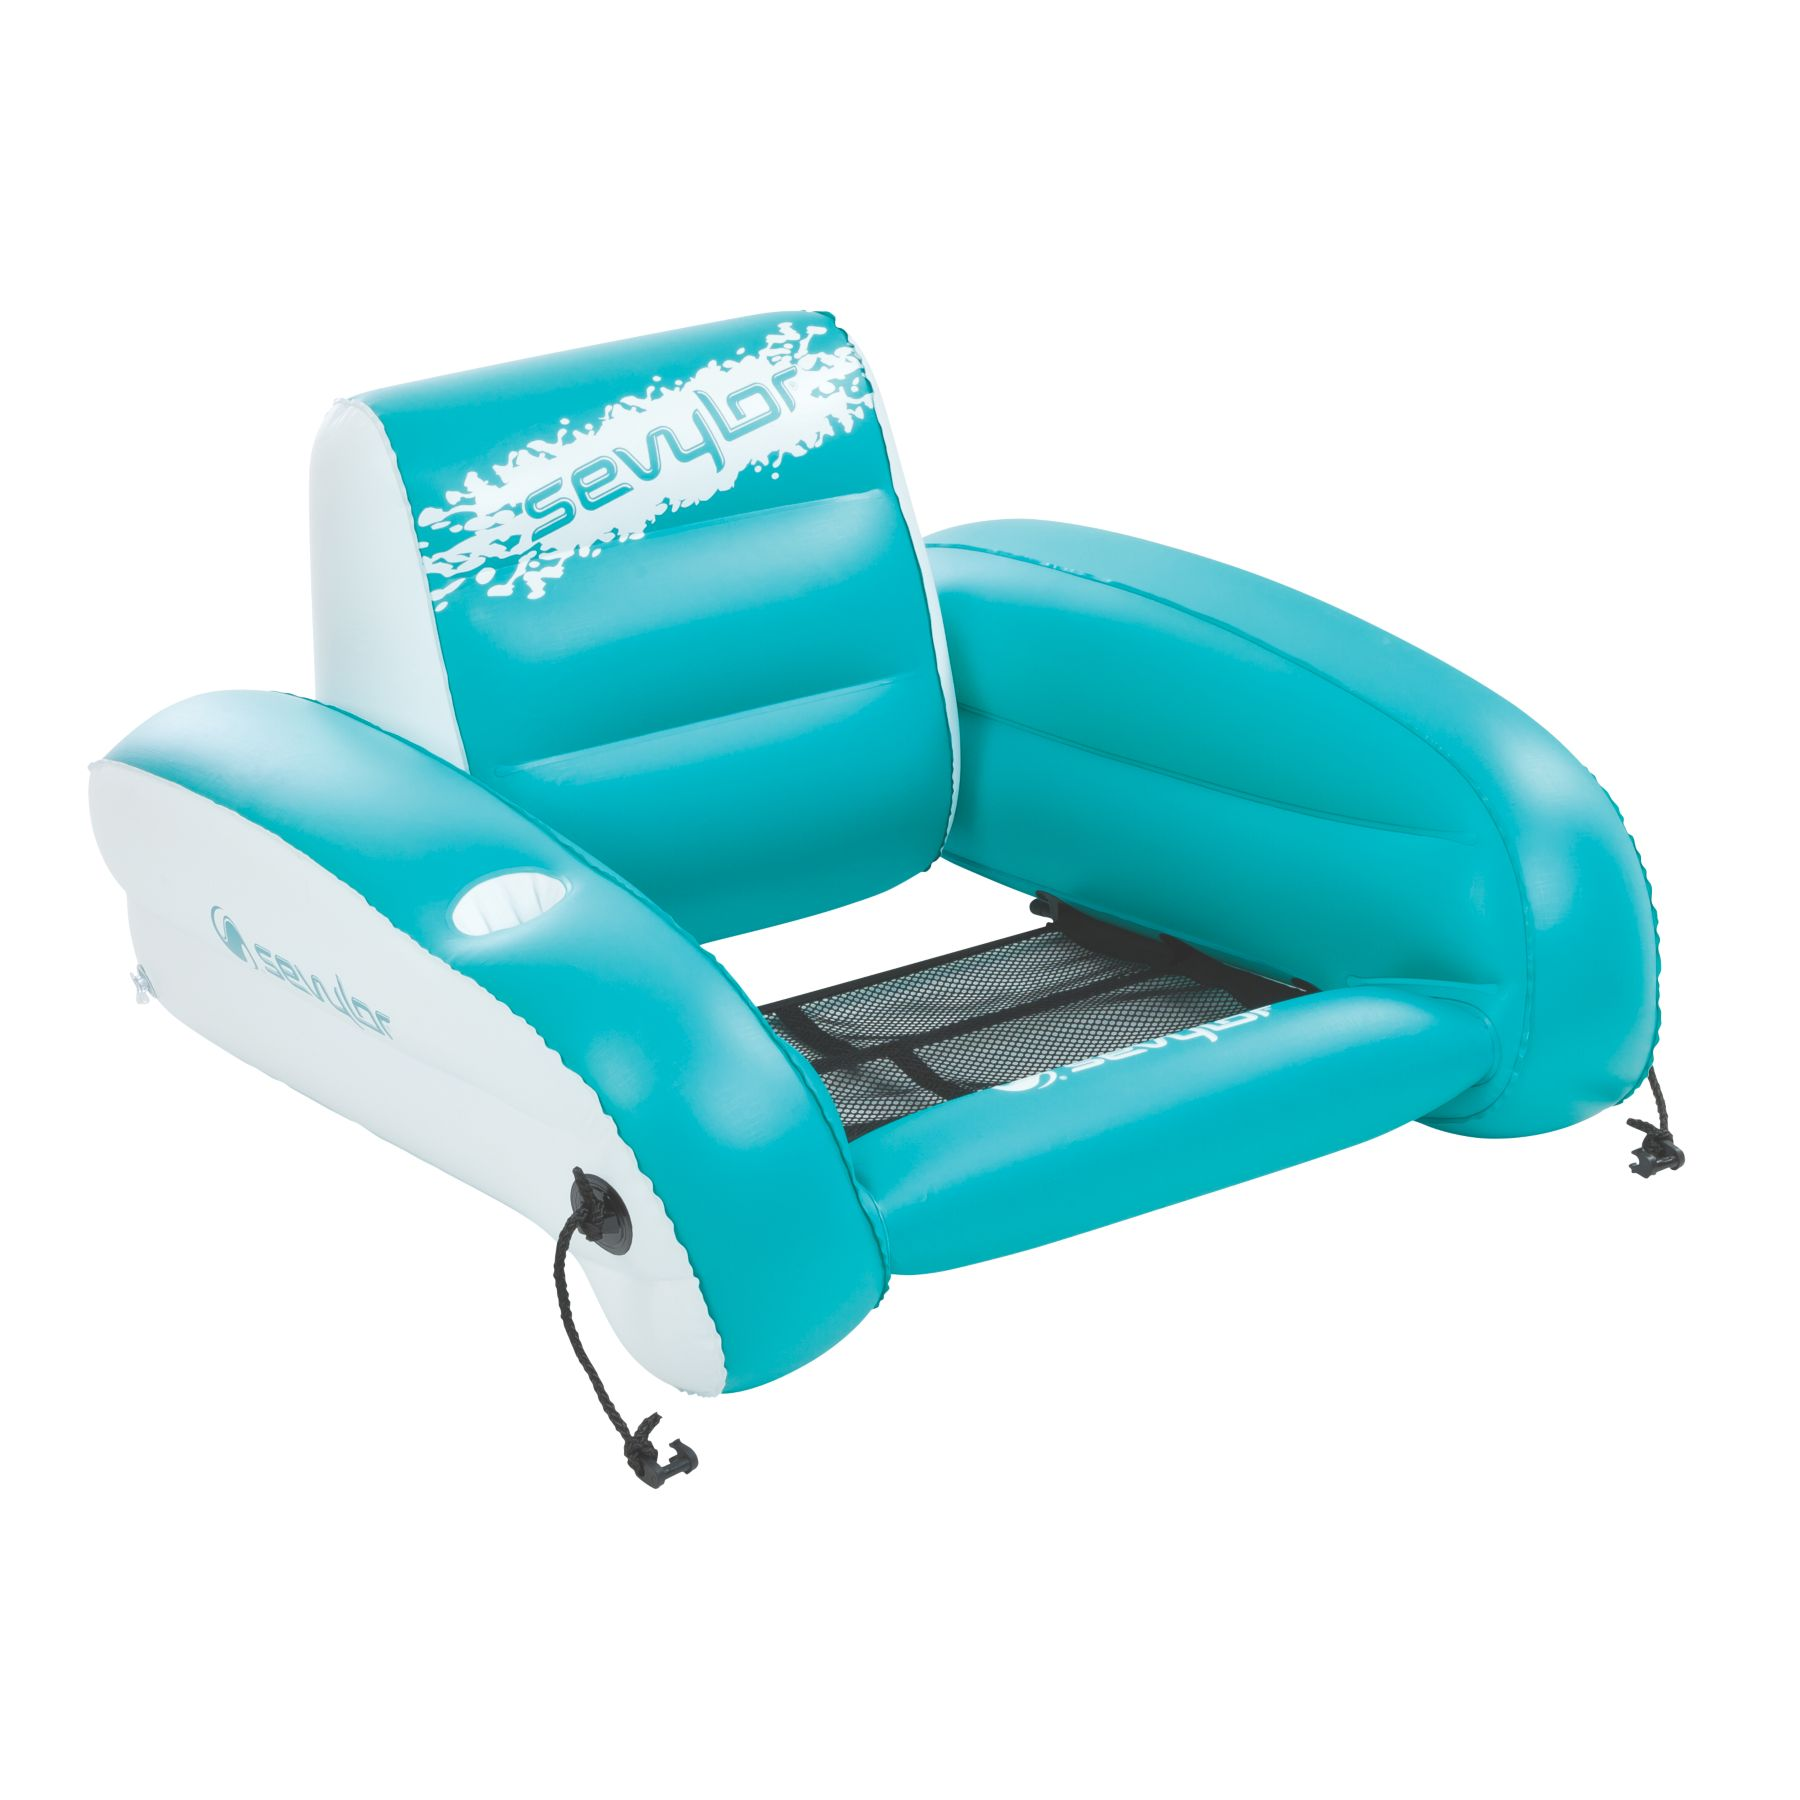 Water Lounge Chair